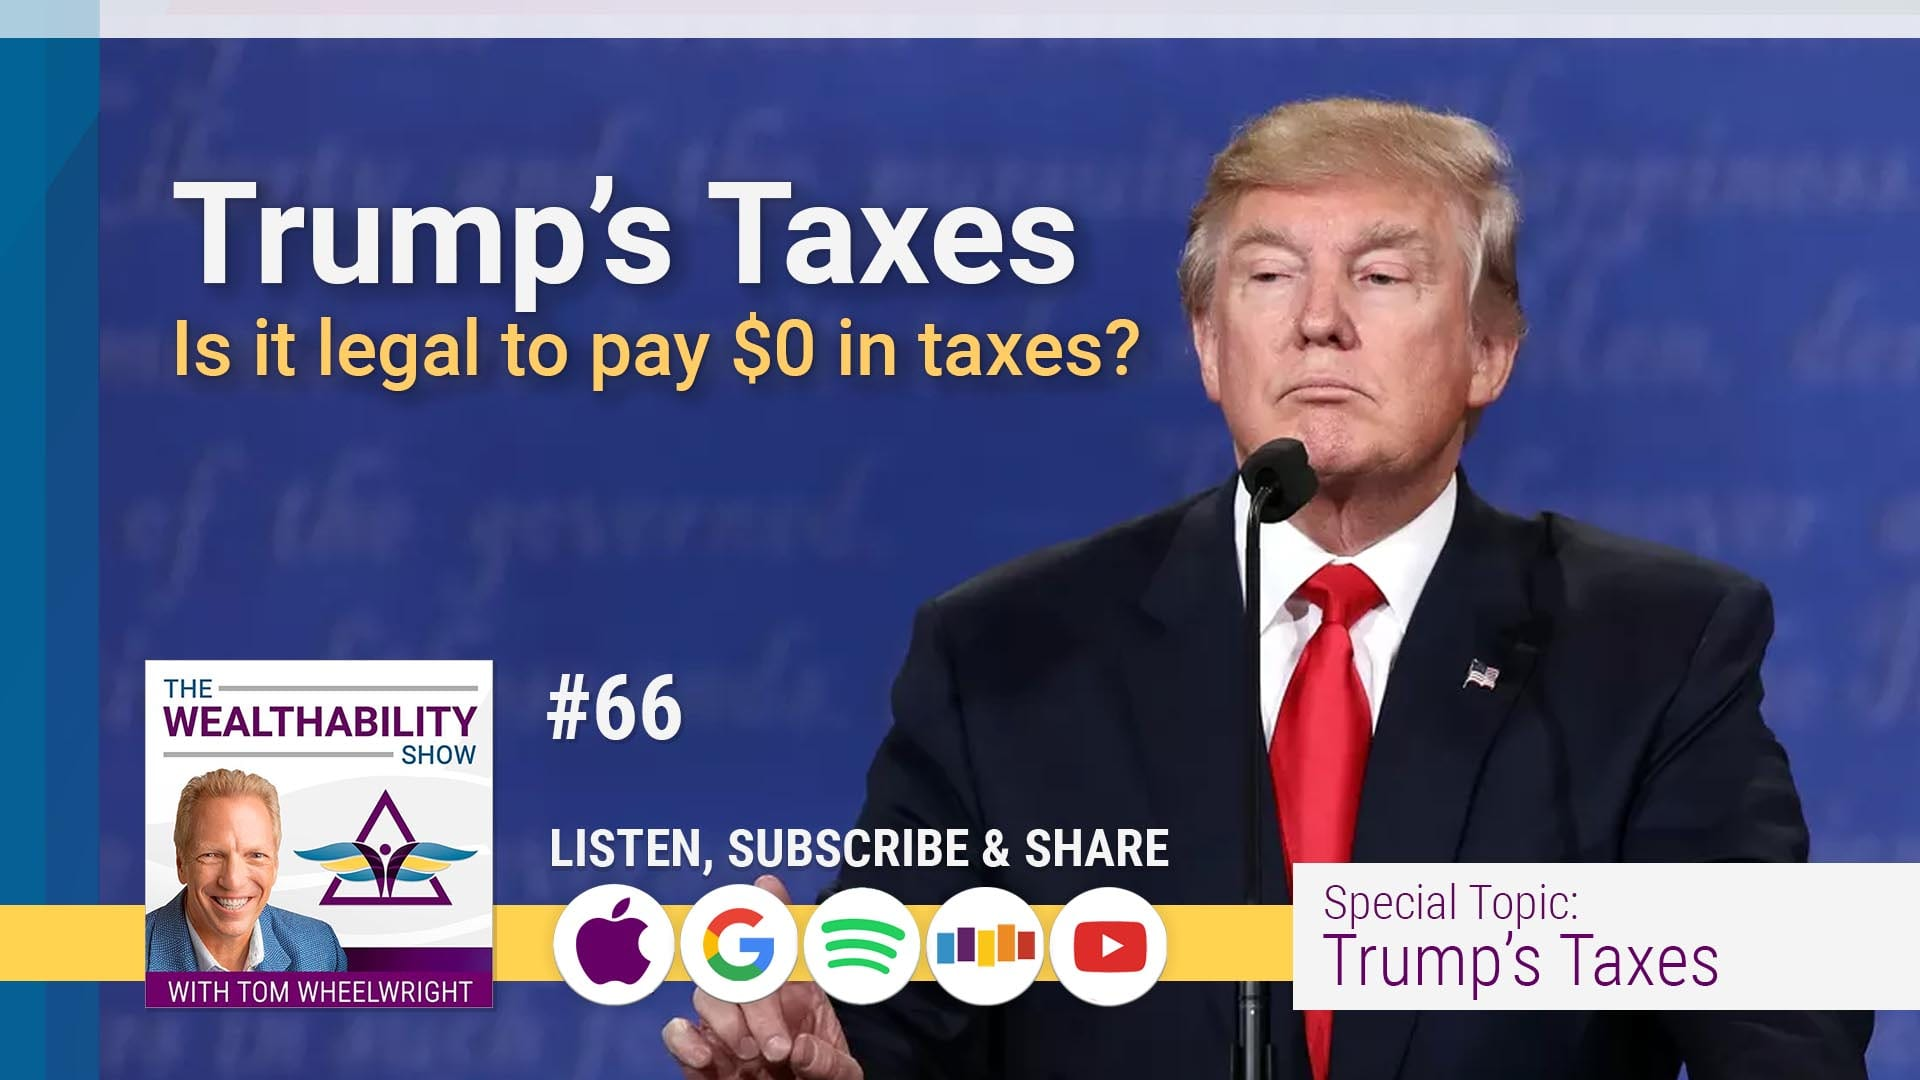 Trumps Taxes - Is it legal to pay $0 in taxes